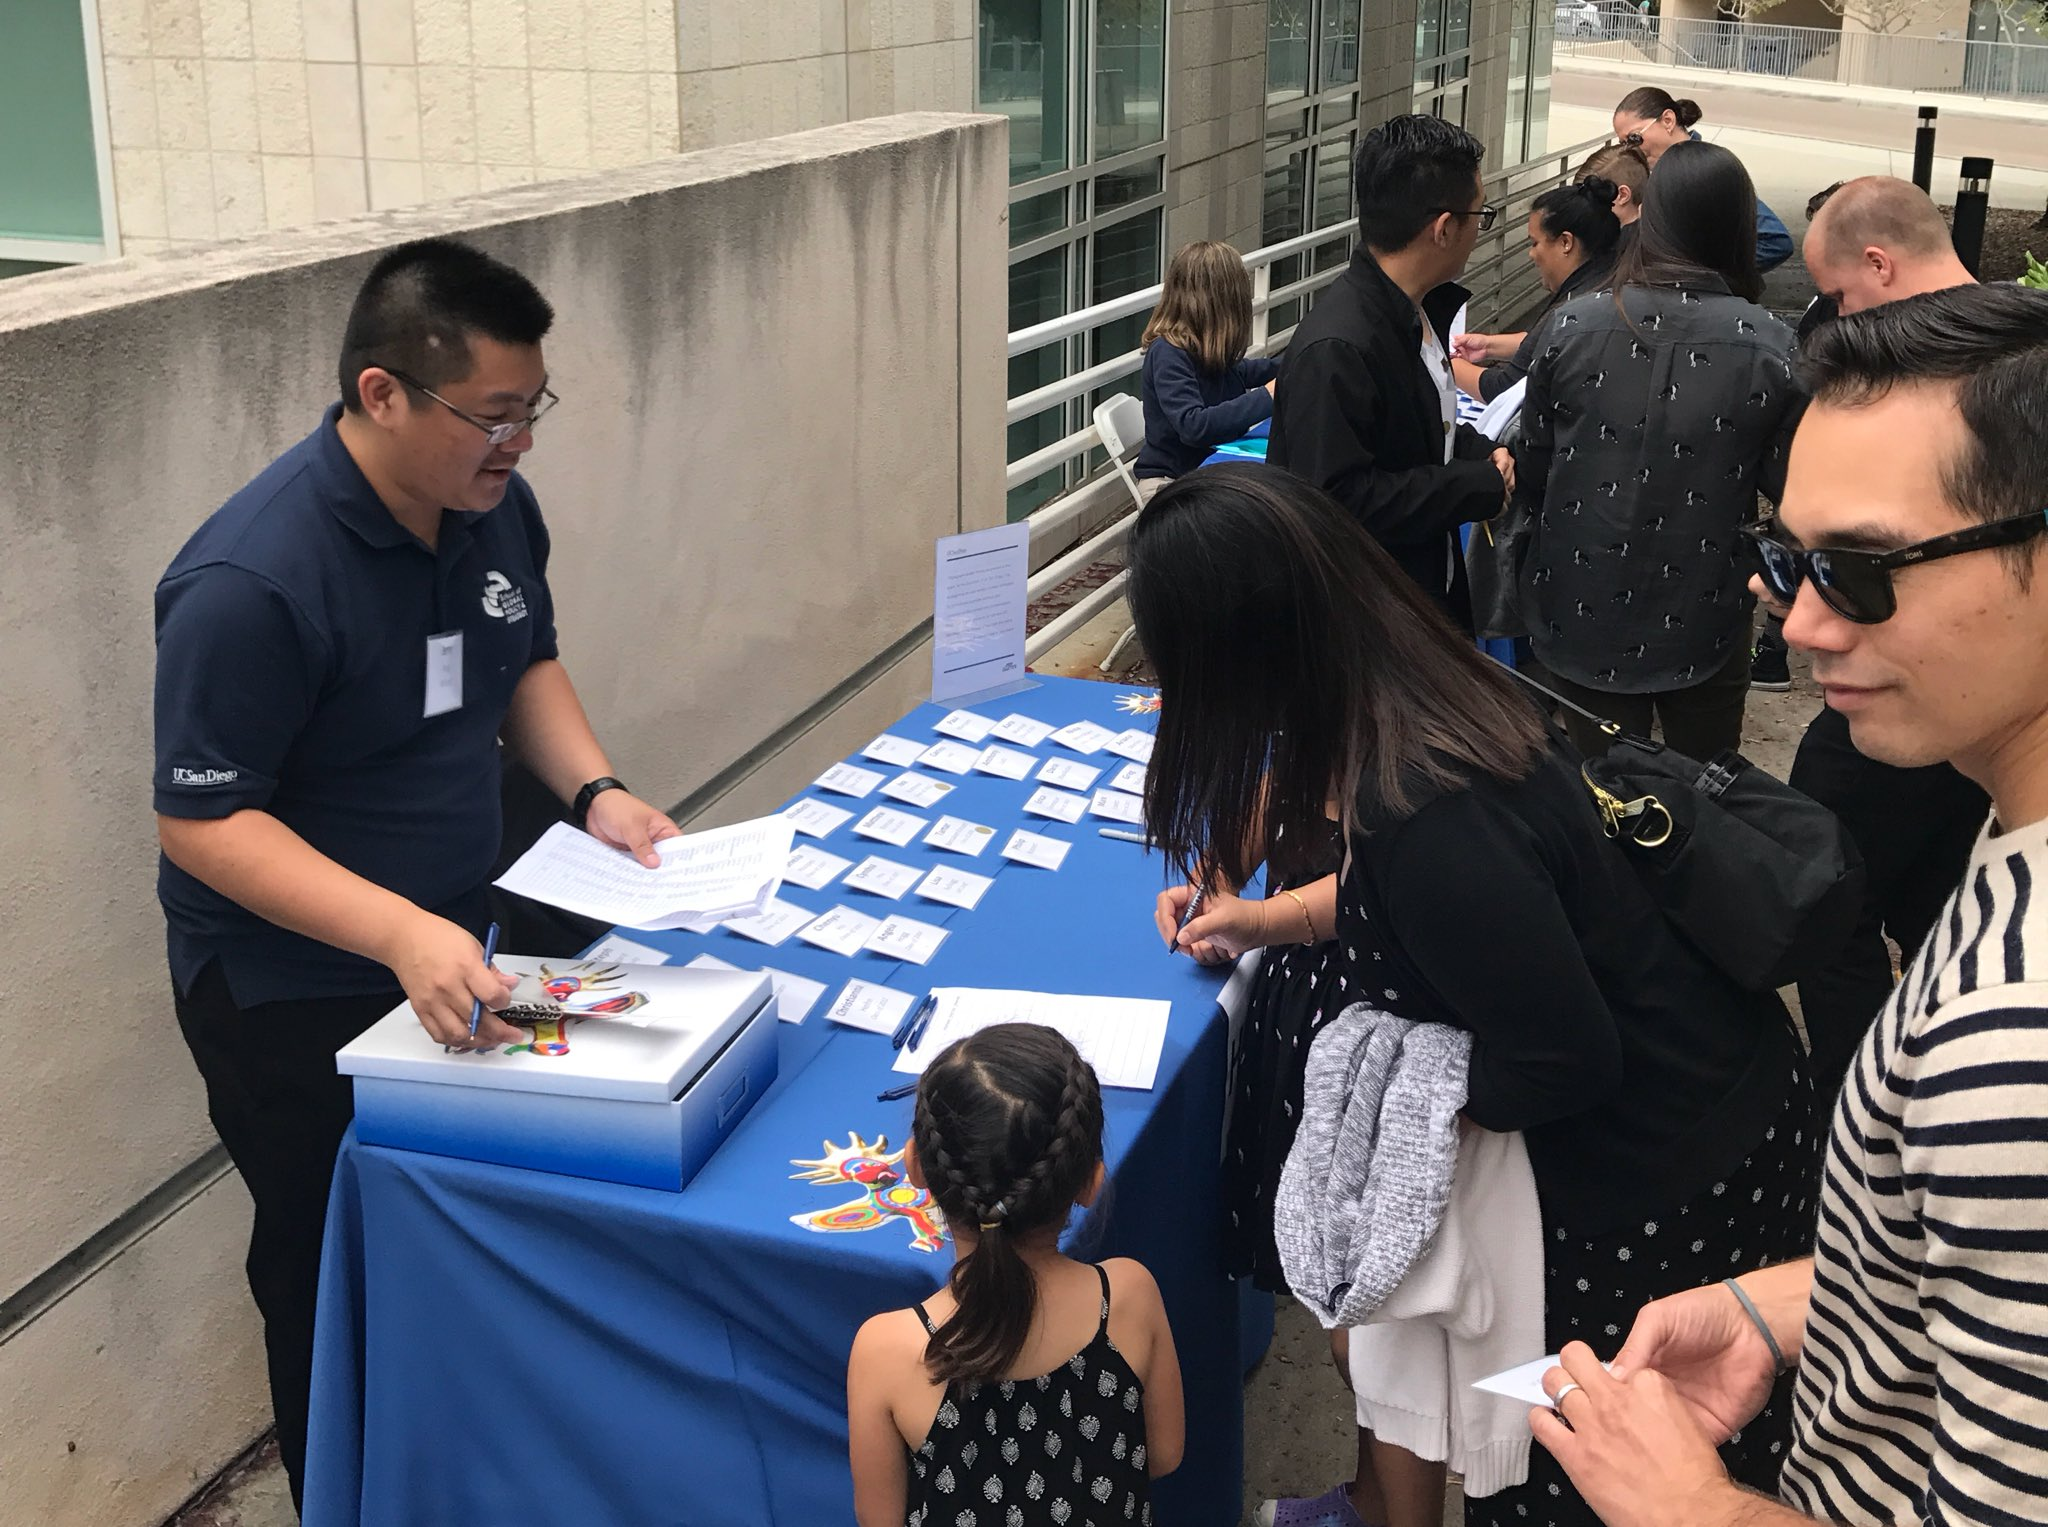 Welcome back to campus! The GPS and ISP alumni weekend celebration is just getting started #UCSDAlumni #ucsdaw https://t.co/e0N8SjhP6h